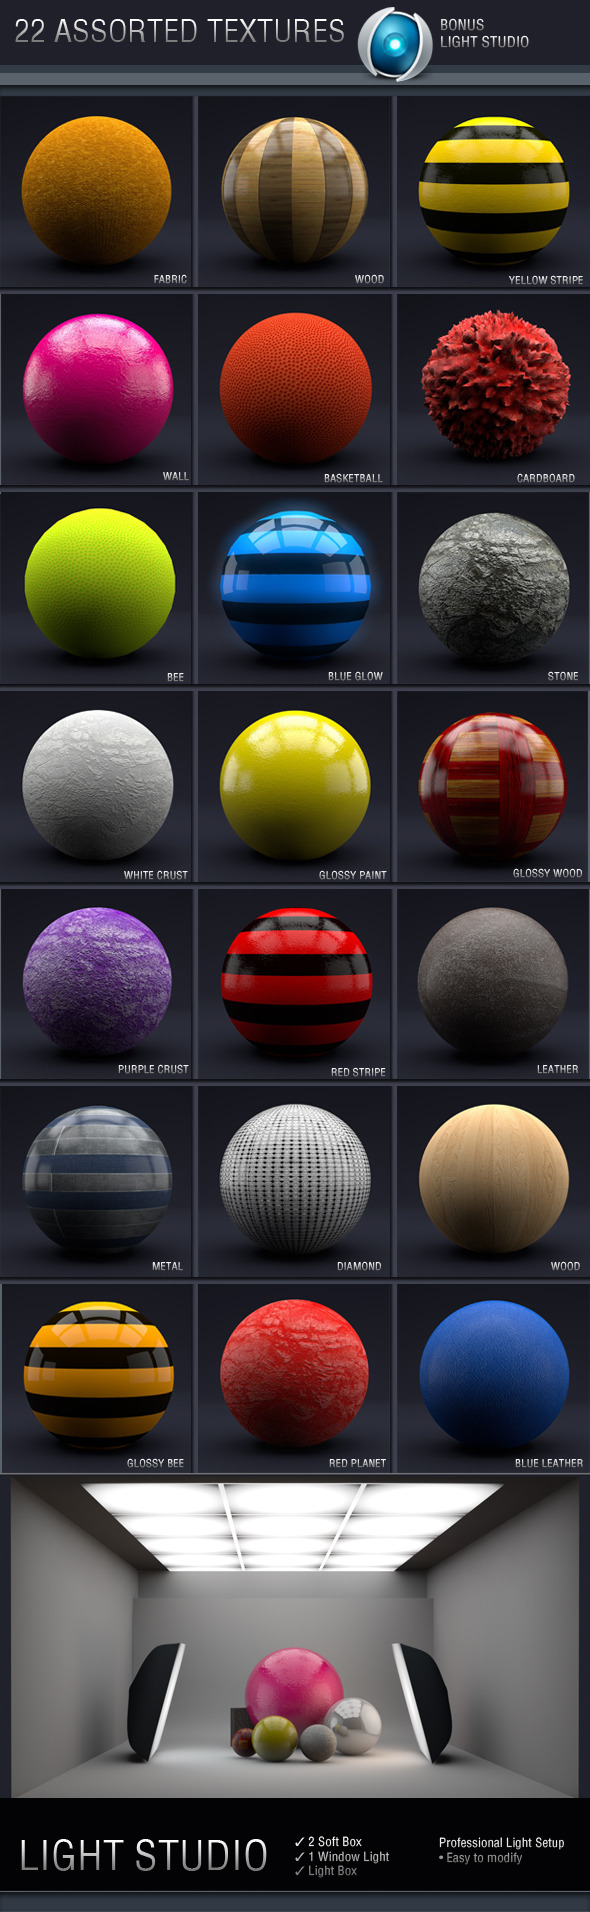 C4D Assorted Textures - 3DOcean Item for Sale